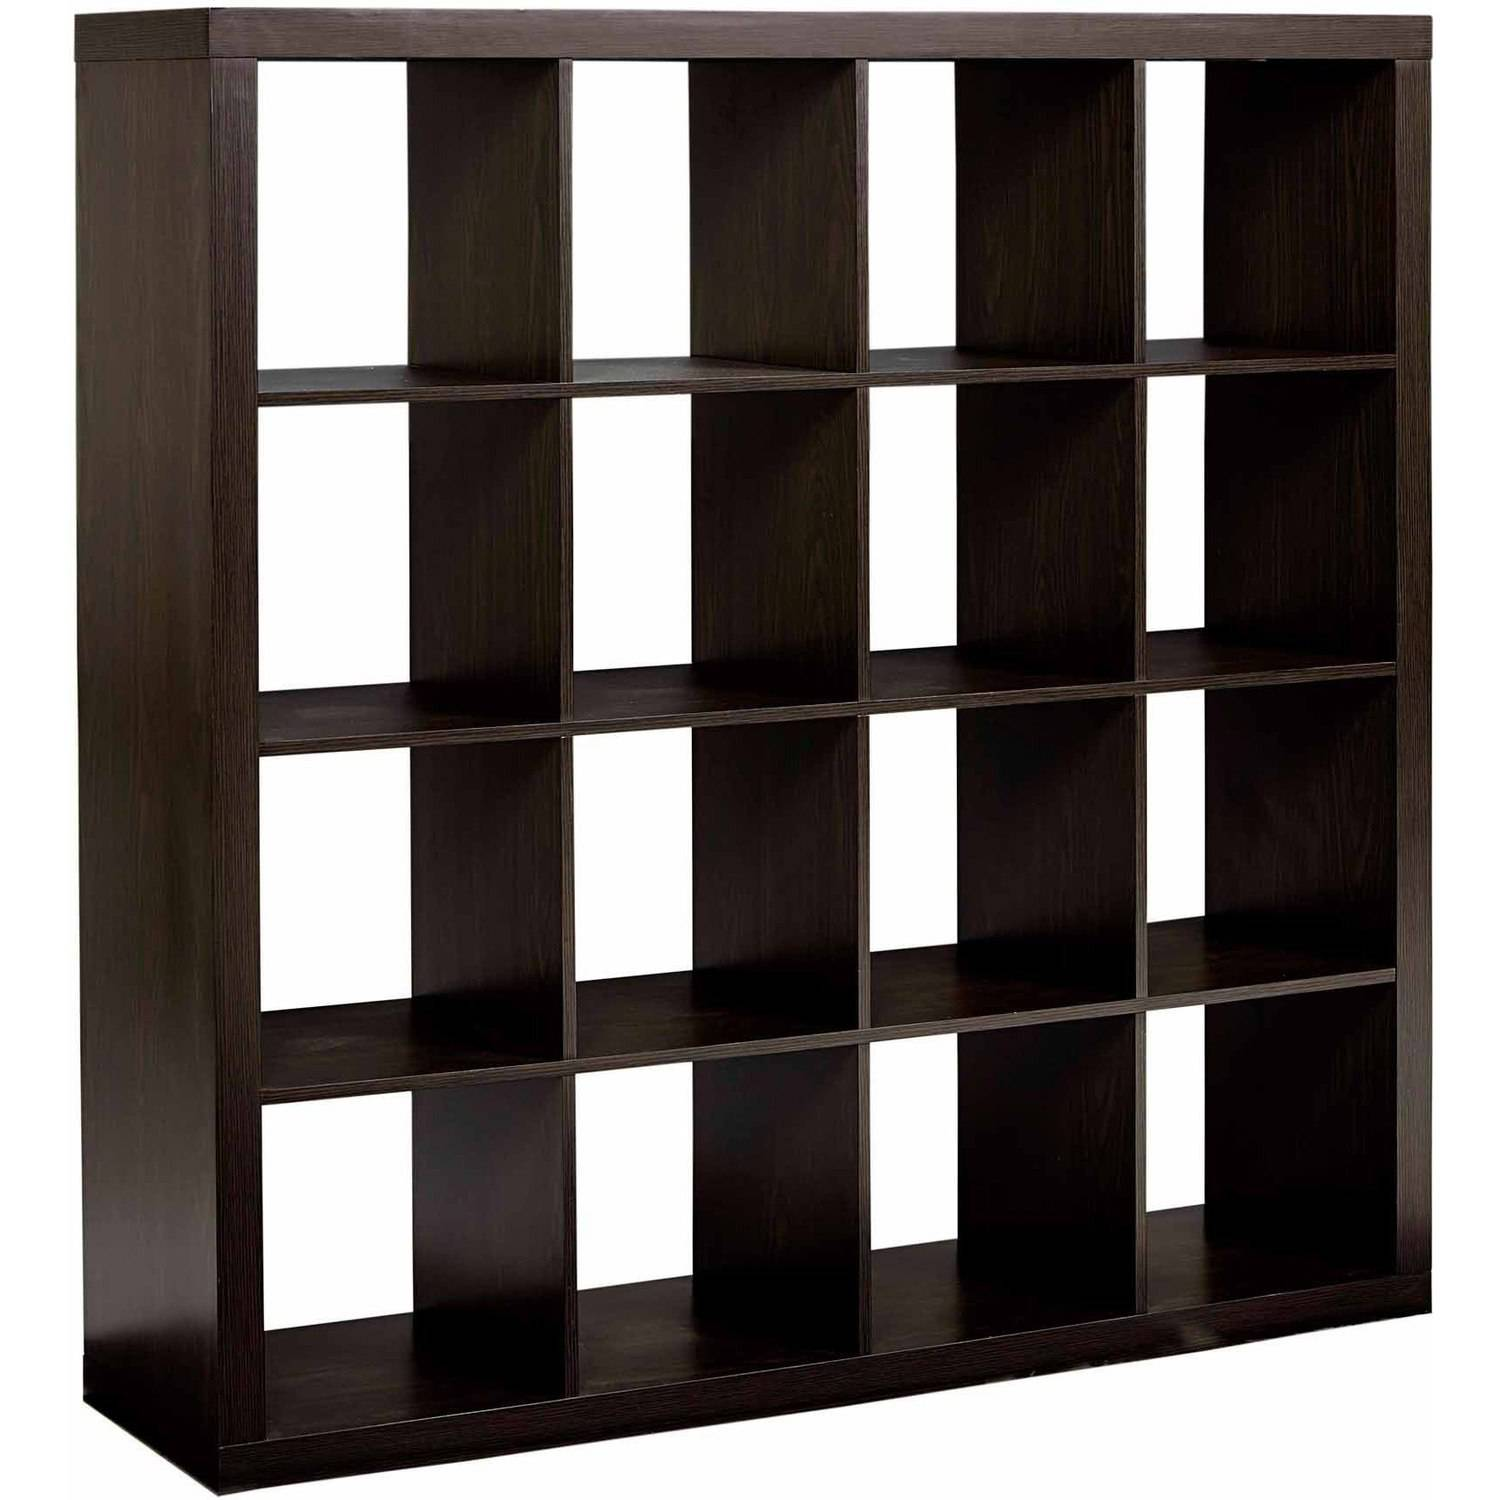 eco product basics storage way bookcase hayneedle bookcases master cfm cube